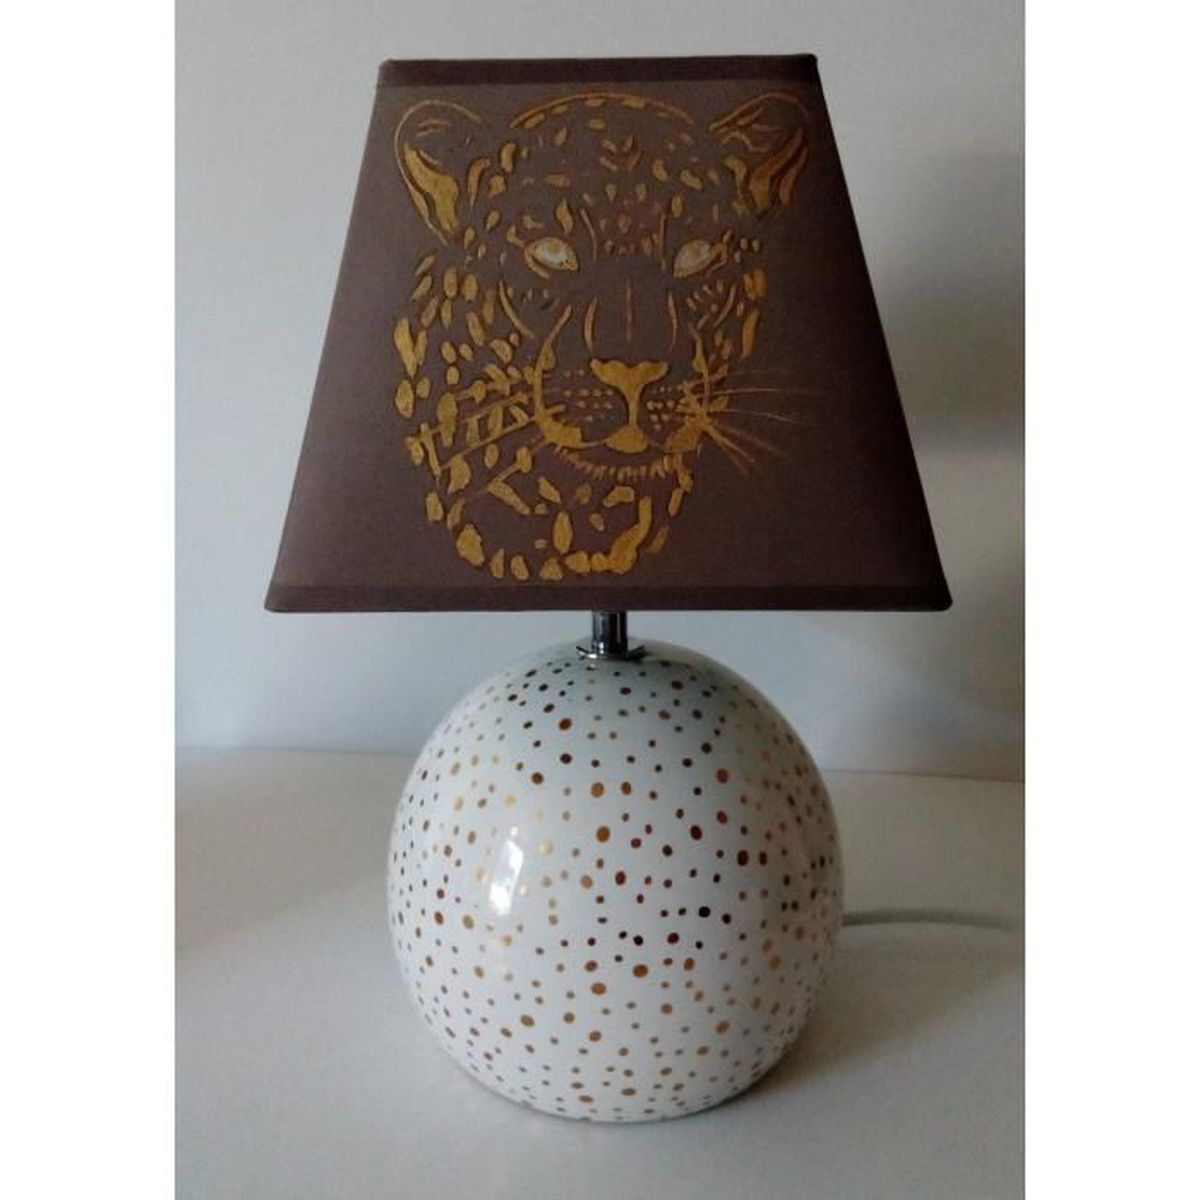 lampe de chevet leopard peint main 2 marron et or achat vente lampe de chevet leopard pei. Black Bedroom Furniture Sets. Home Design Ideas